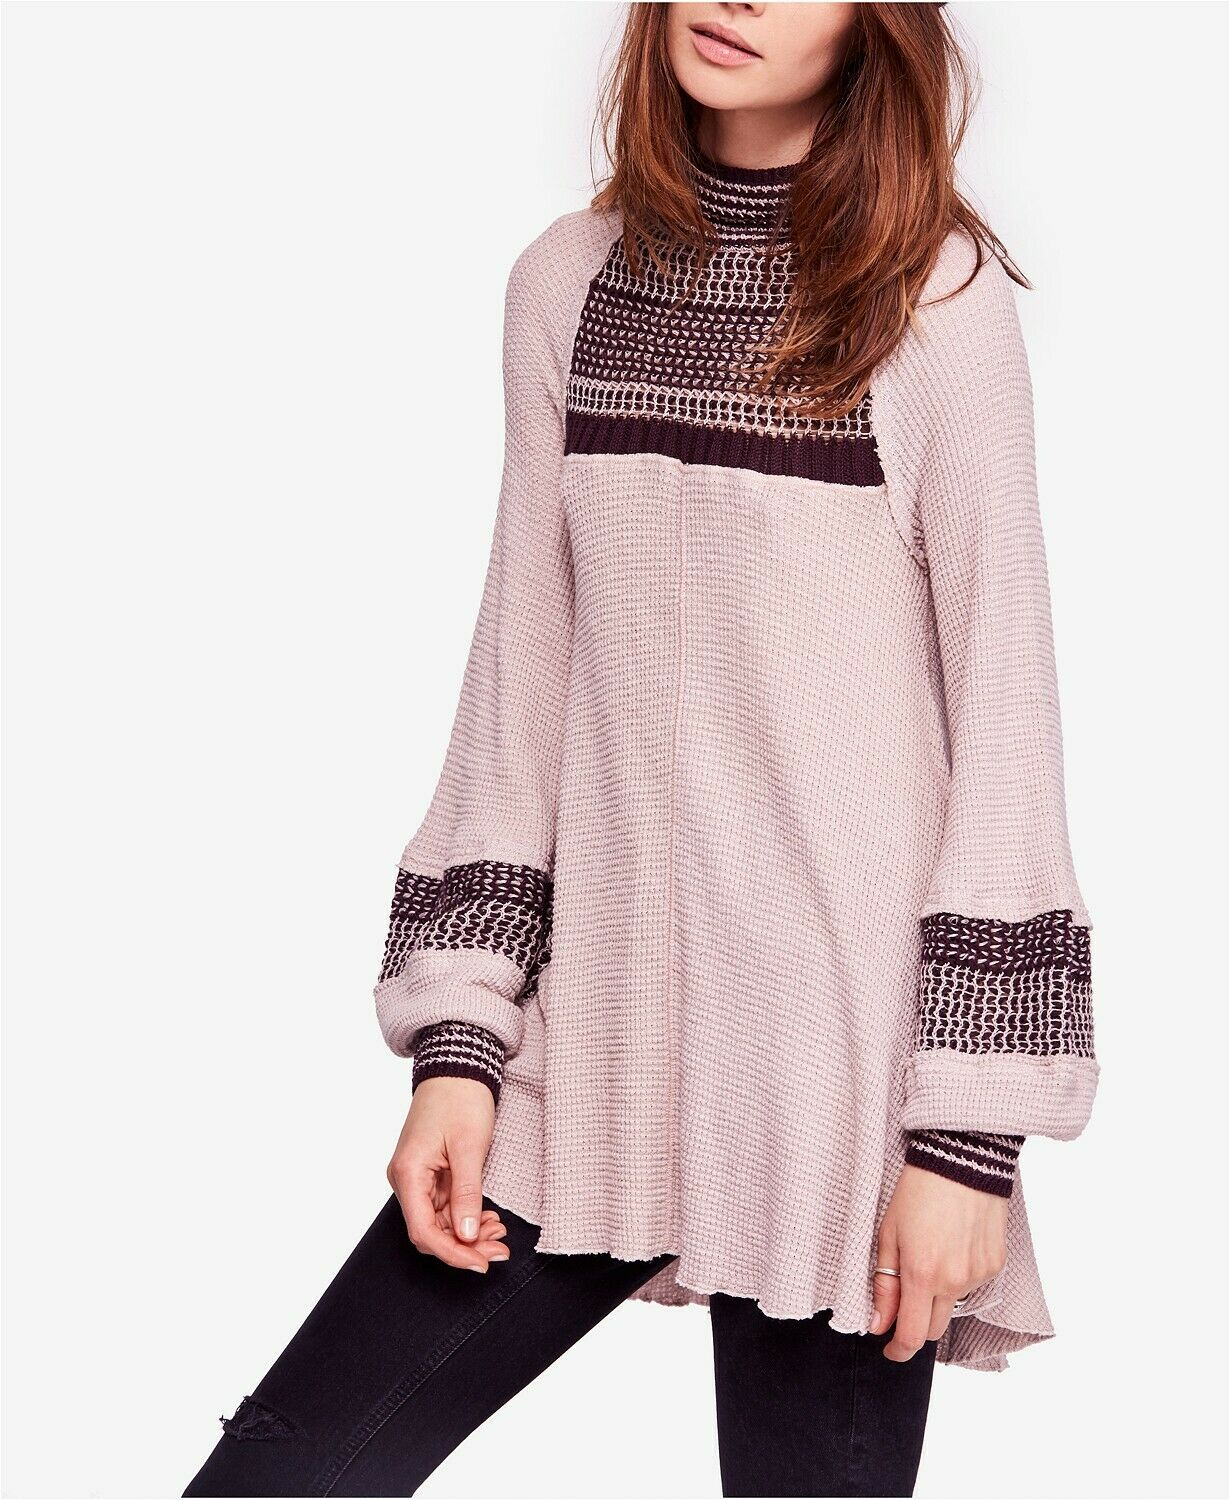 Free People Snow Day Turtleneck Thermal Top Dusty Mauve Größe S